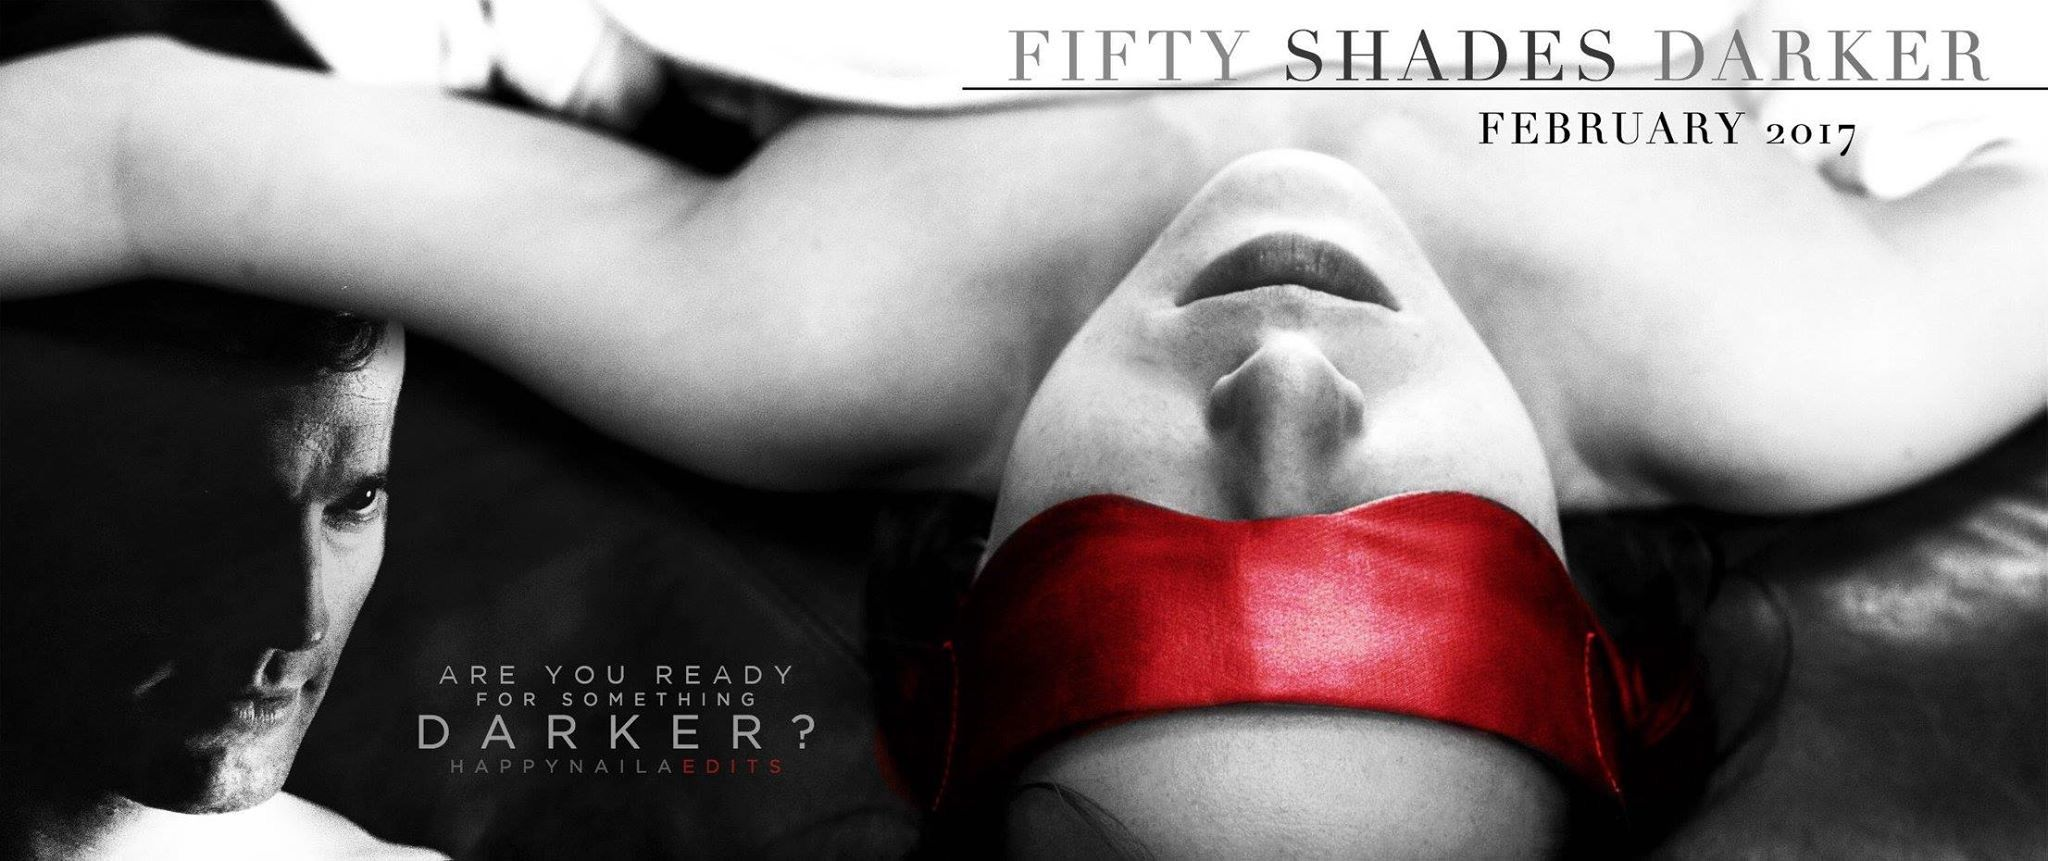 are you ready for something darker fiftyshades meet fifty are you ready for something darker fiftyshades